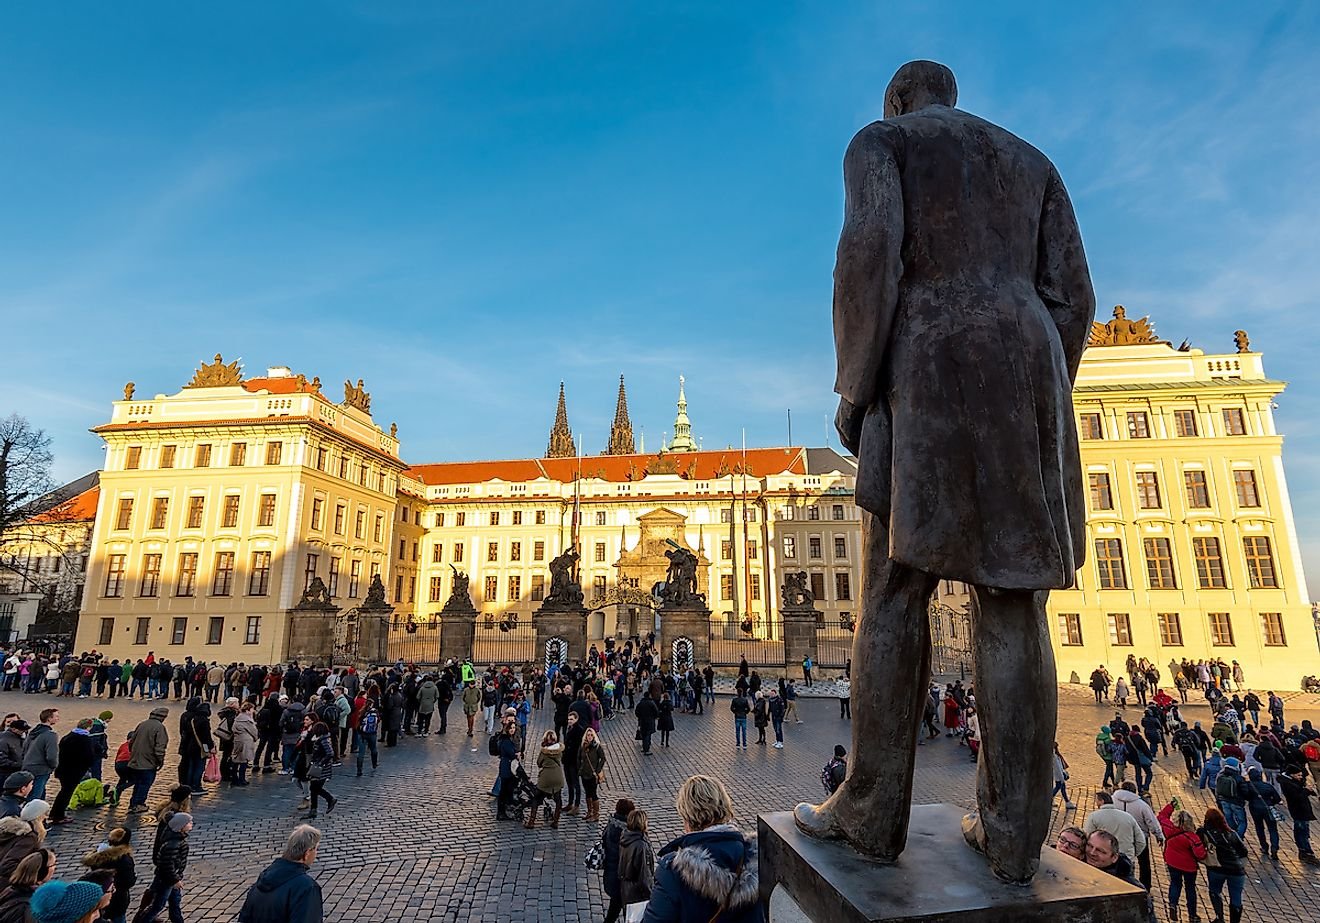 Statue of Tomas Garrigue Masaryk, the first President of Czechoslovakia at Hradcany Square, Prague Castle. Image credit: Kojin/Shutterstock.com